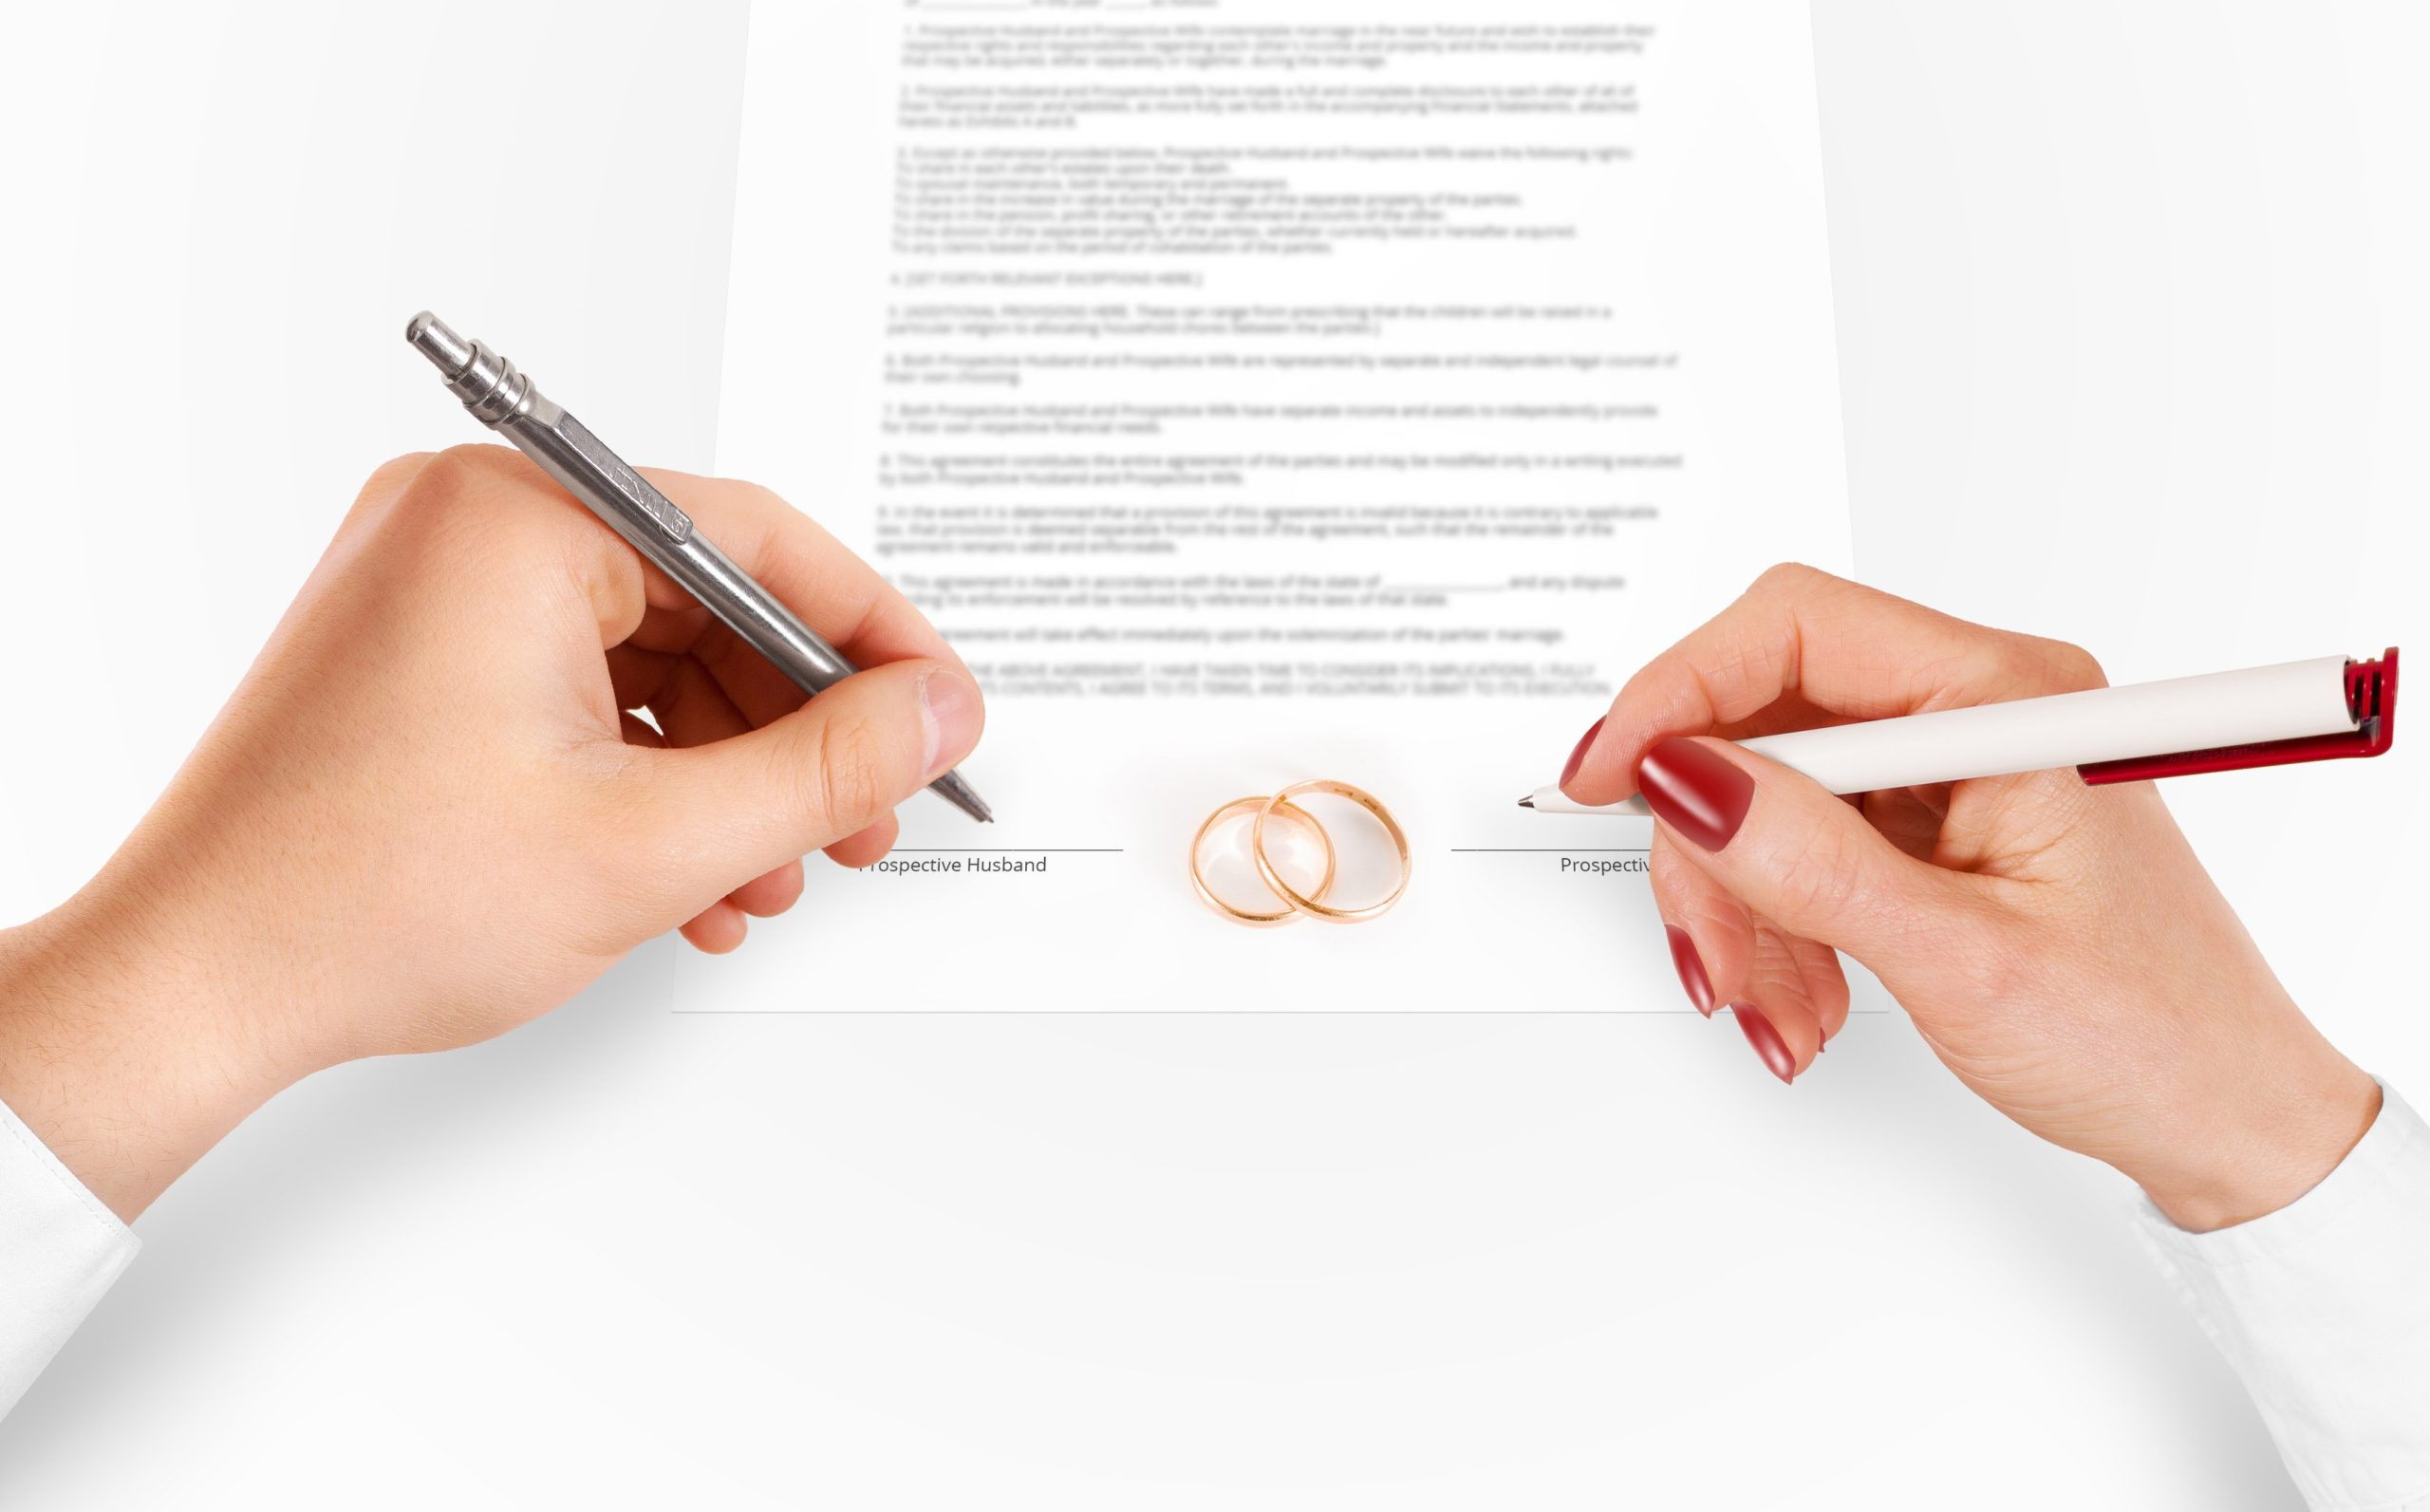 Are pre-nuptial and post-nuptial agreements legally binding and what are the advantages of entering into them?